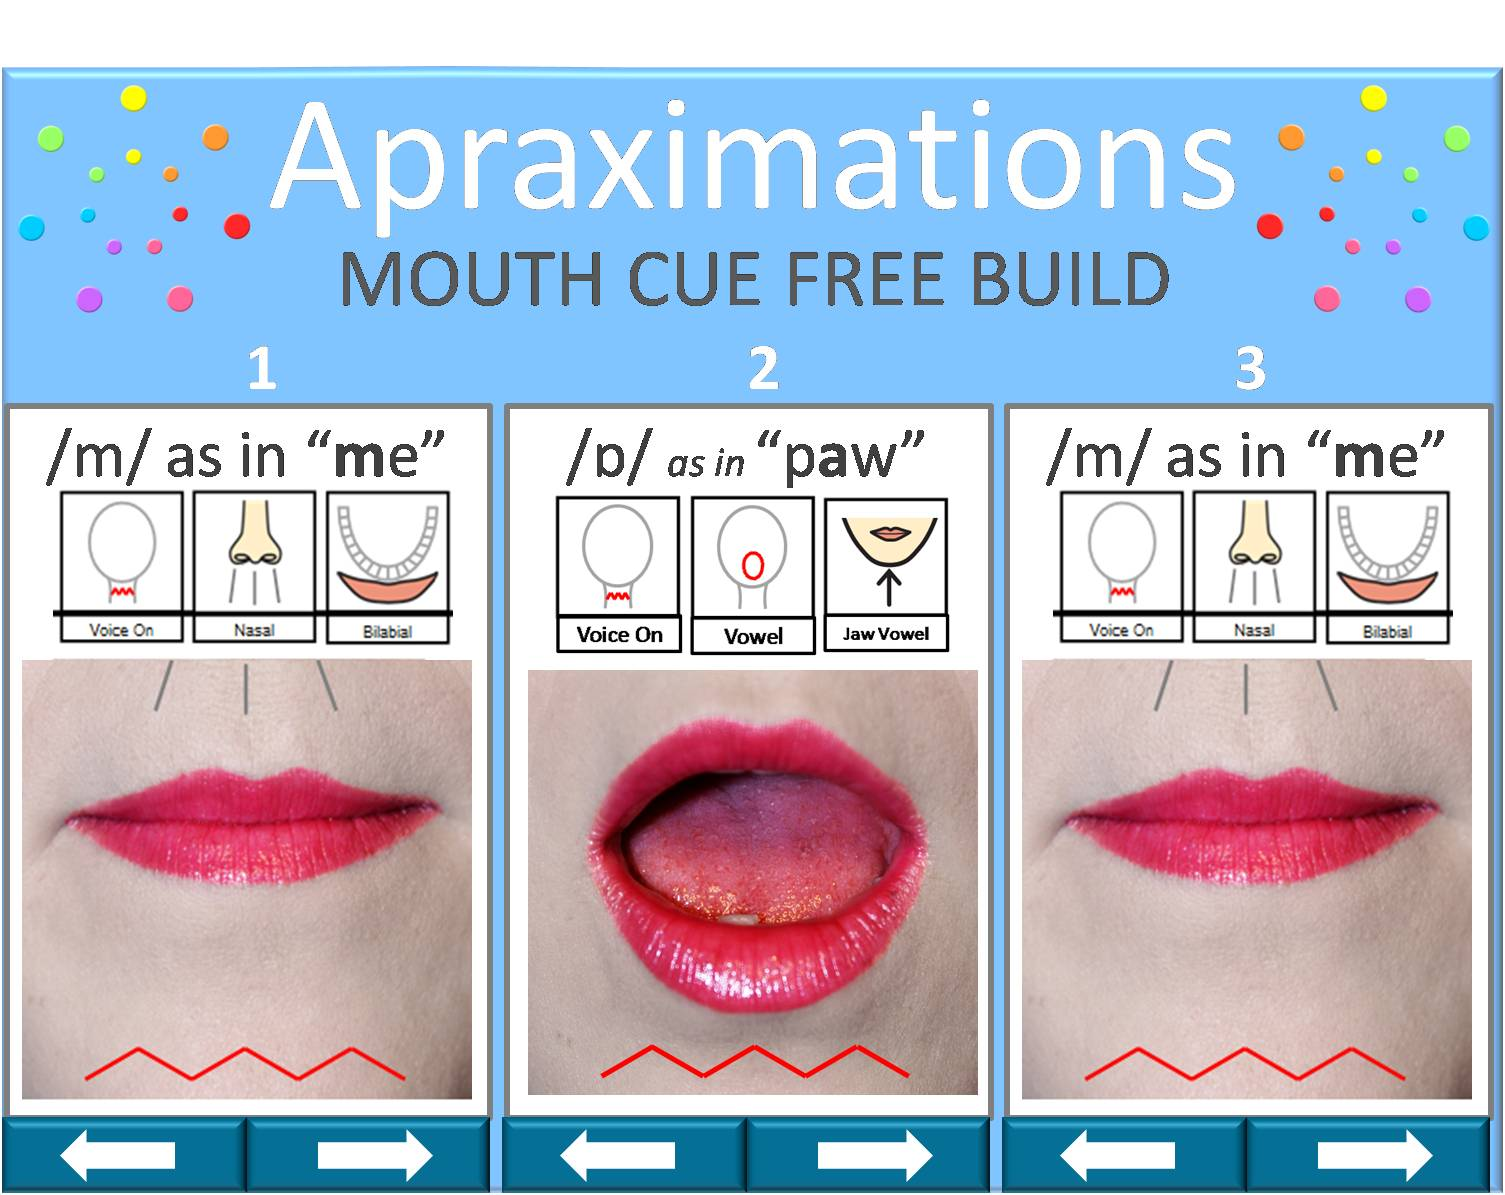 apraximations-pic8